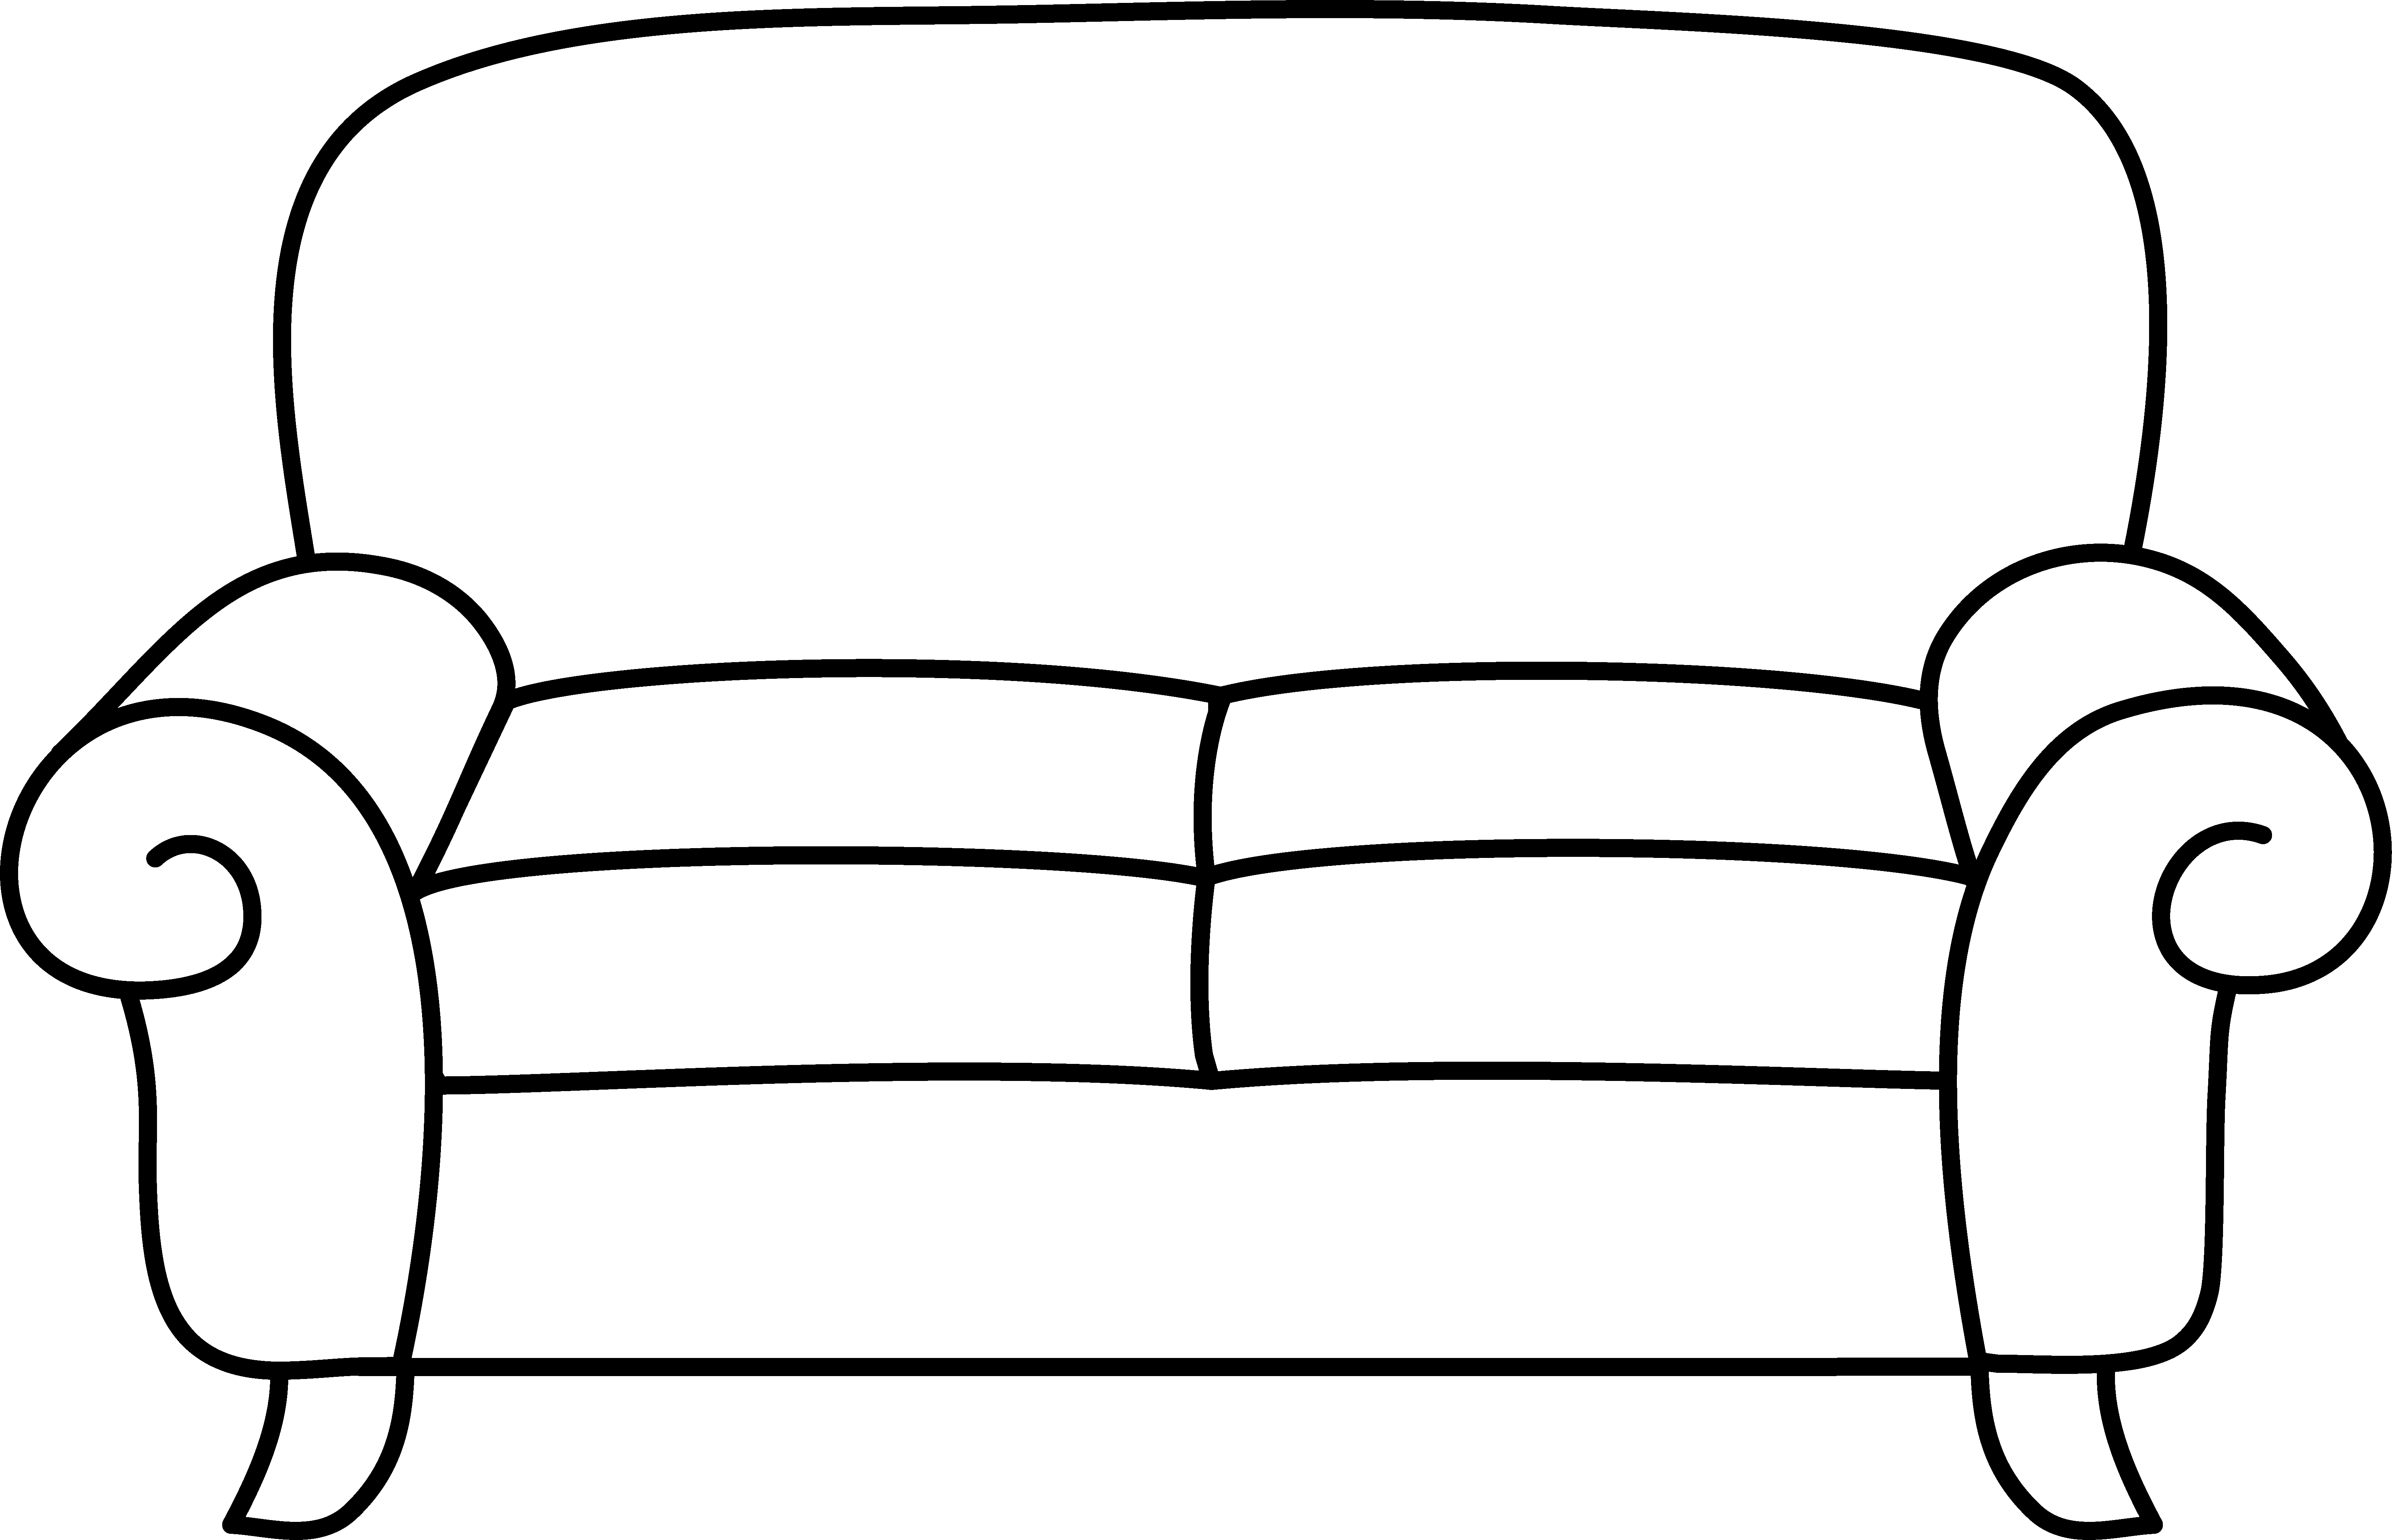 sofa coloring page free clip art couch coloring page 6597x4247 png clipart download clipartmax